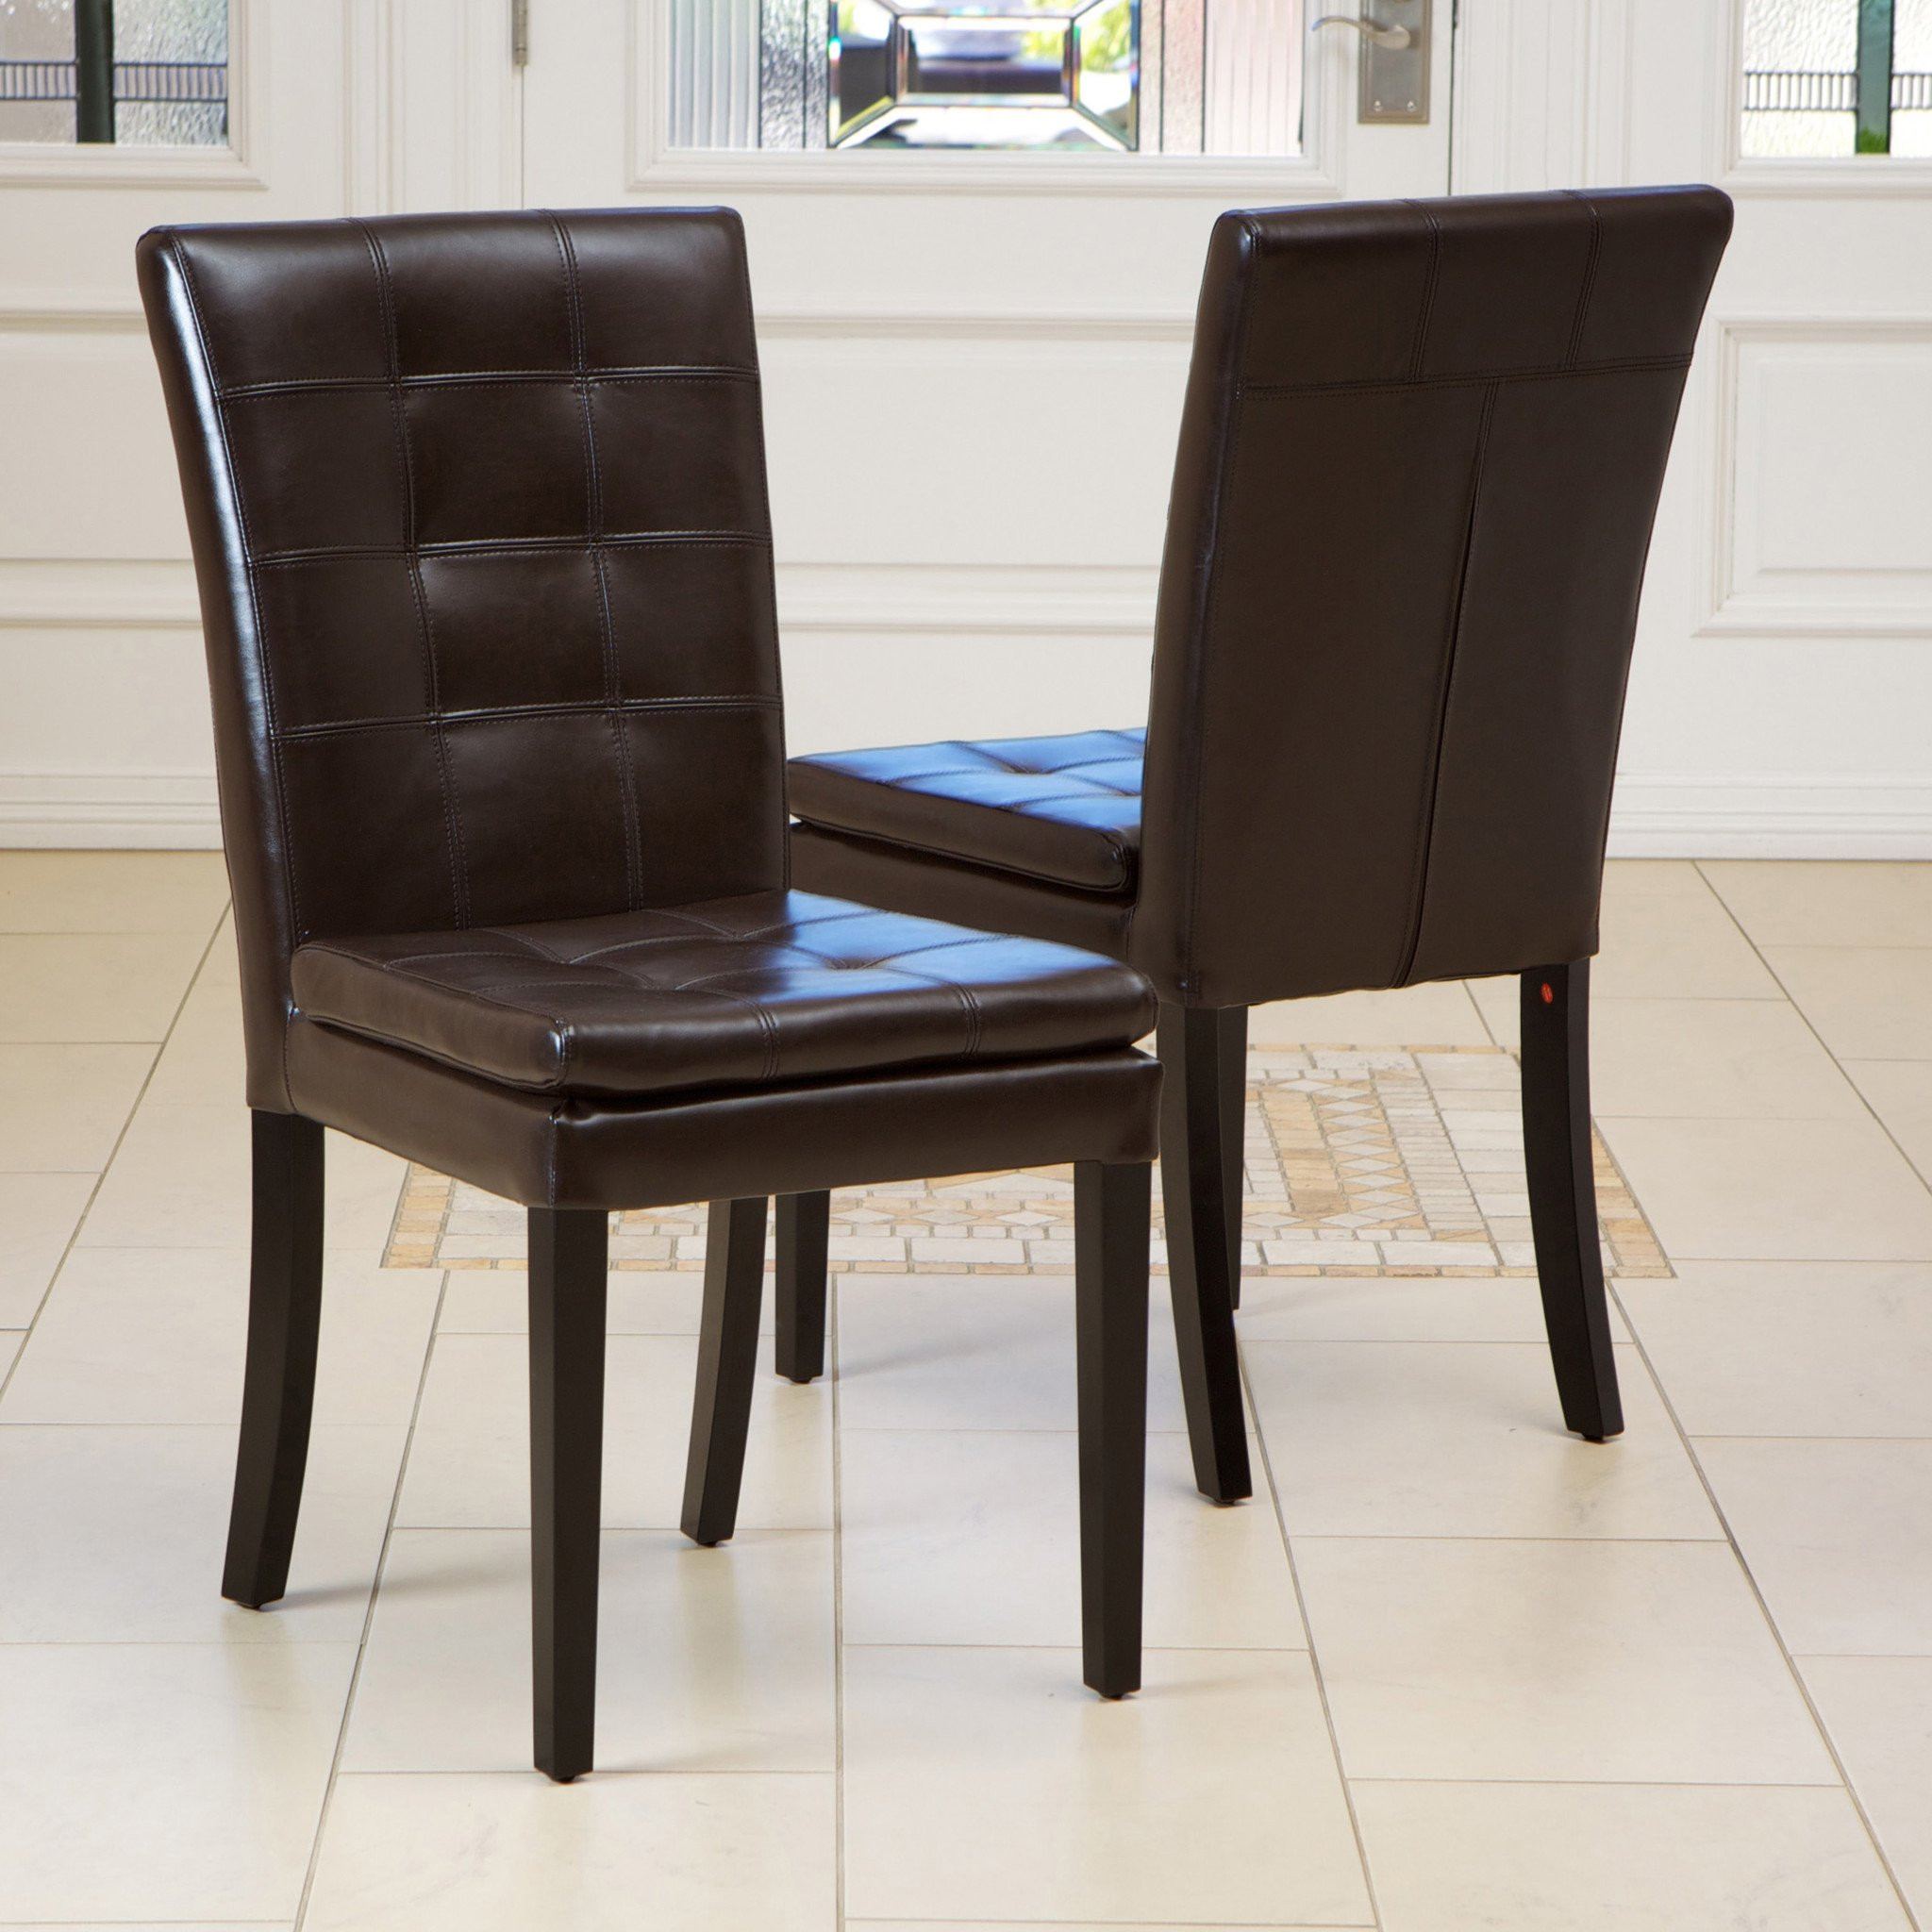 Barrington Brown Leather Dining Chairs (Set of 2)